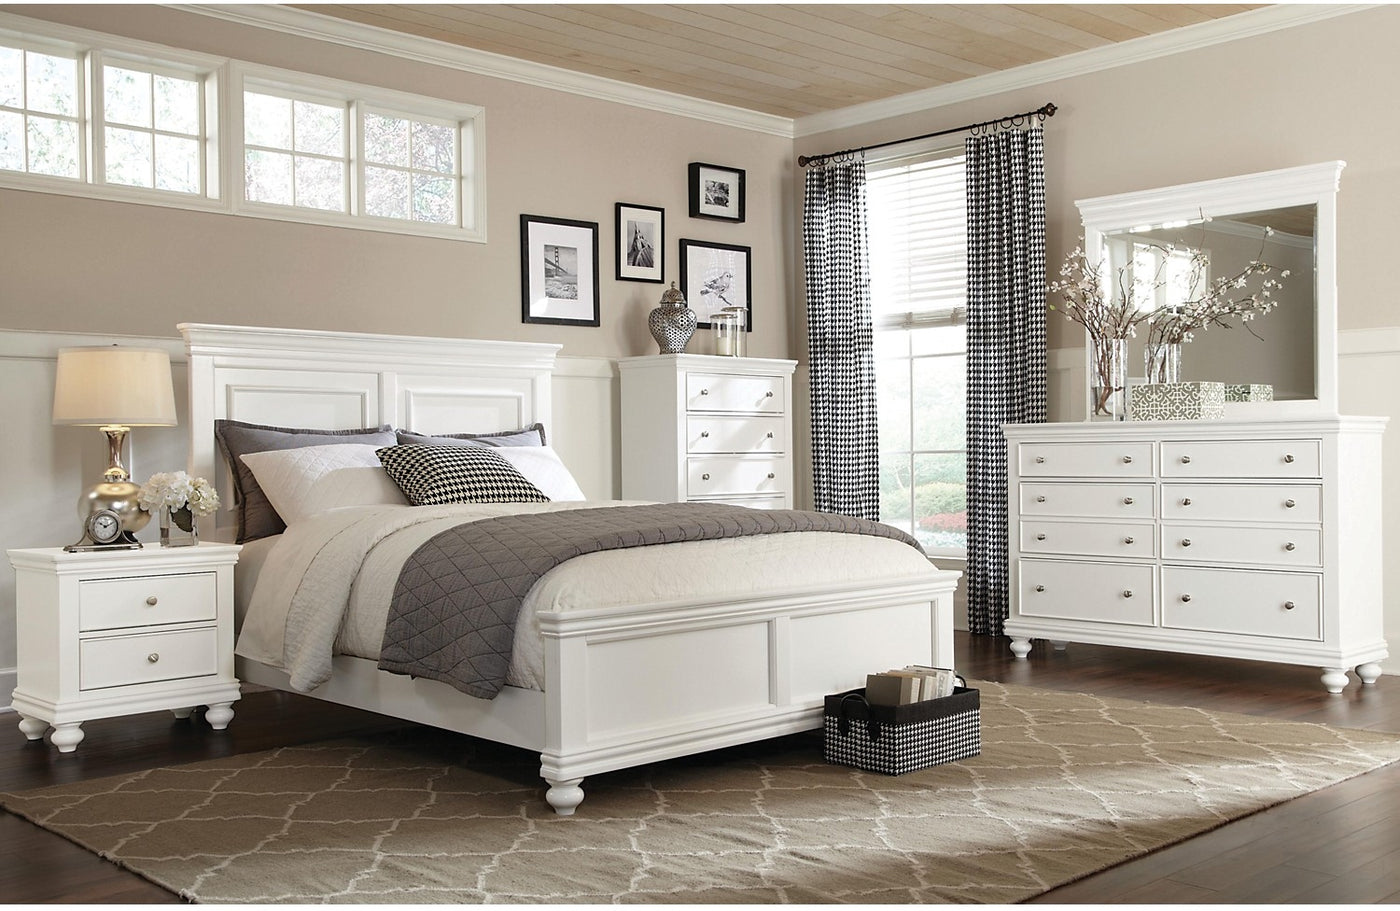 Bridgeport 6-Piece Queen Bedroom Set – White | The Brick